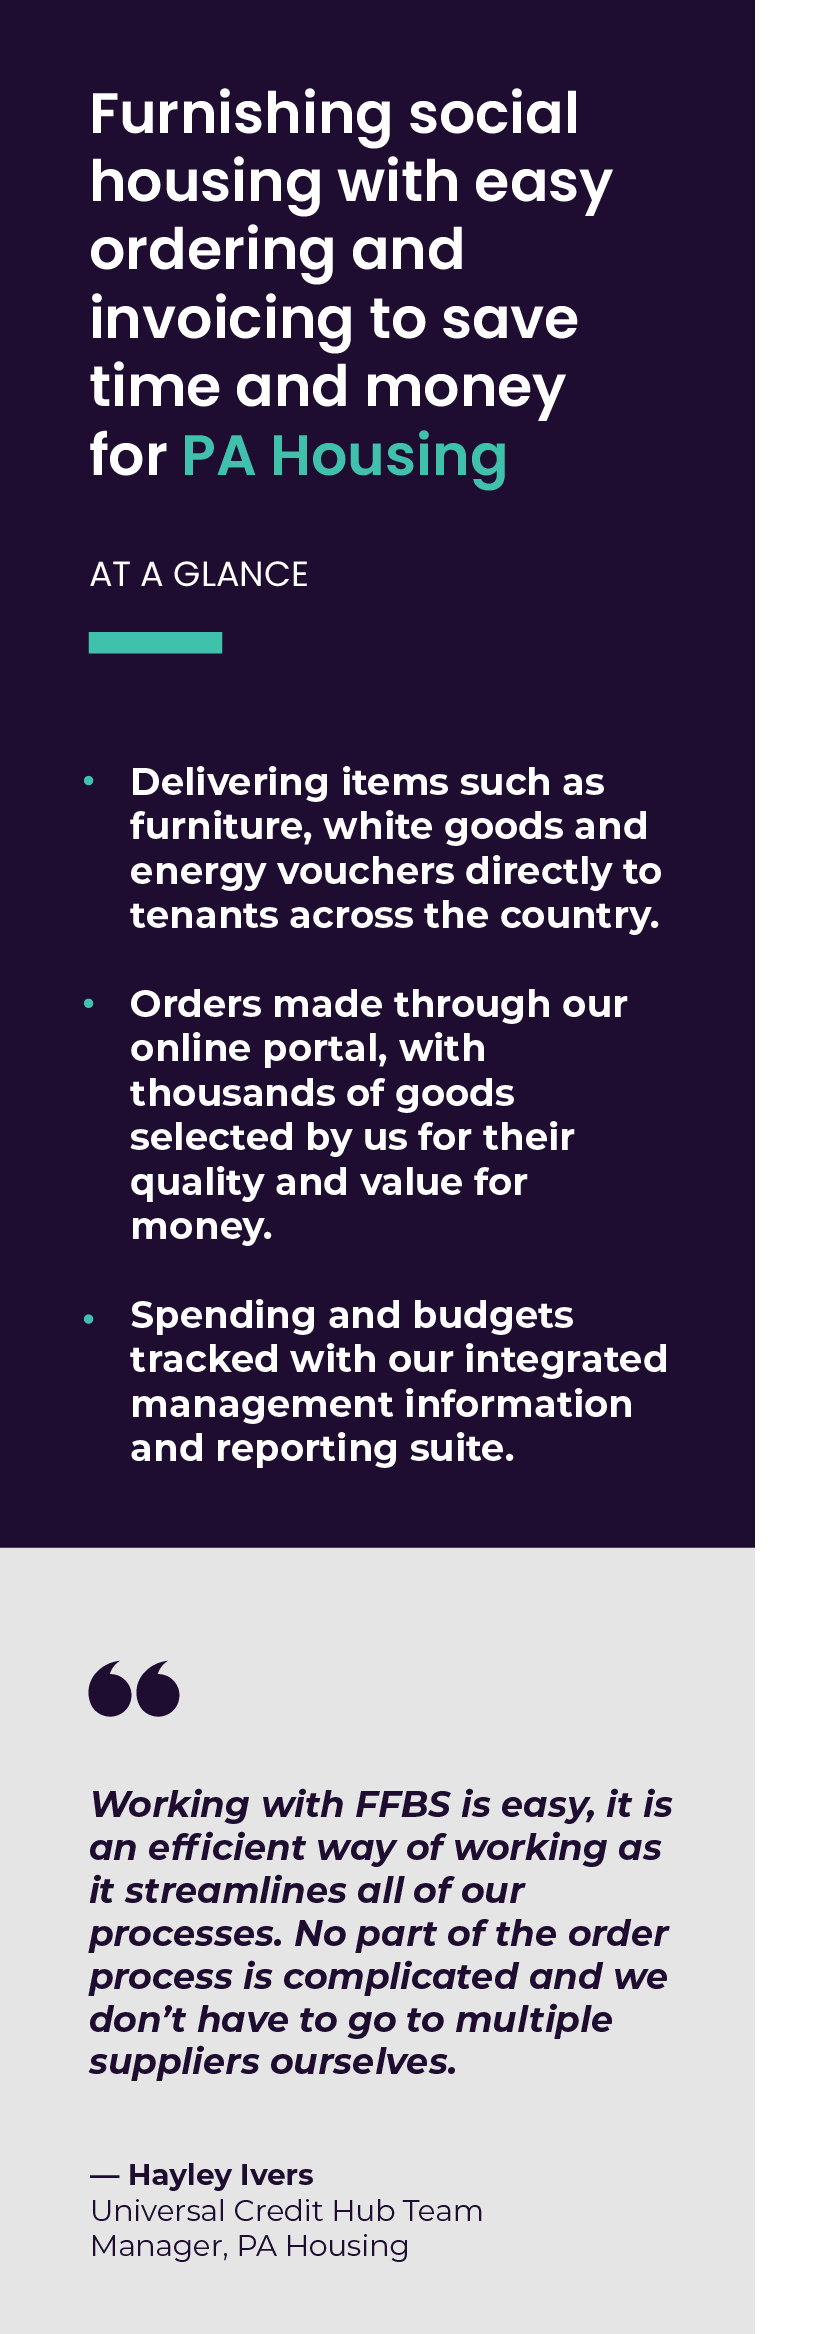 Furnishing social housing with easy ordering and invoicing to save time and money for PA Housing  Delivering items such as furniture, white goods and energy vouchers directly to tenants across the country.  Orders made through our online portal, with thousands of goods selected by us for their quality and value for money.  Spending and budgets tracked with our integrated management information and reporting suite.